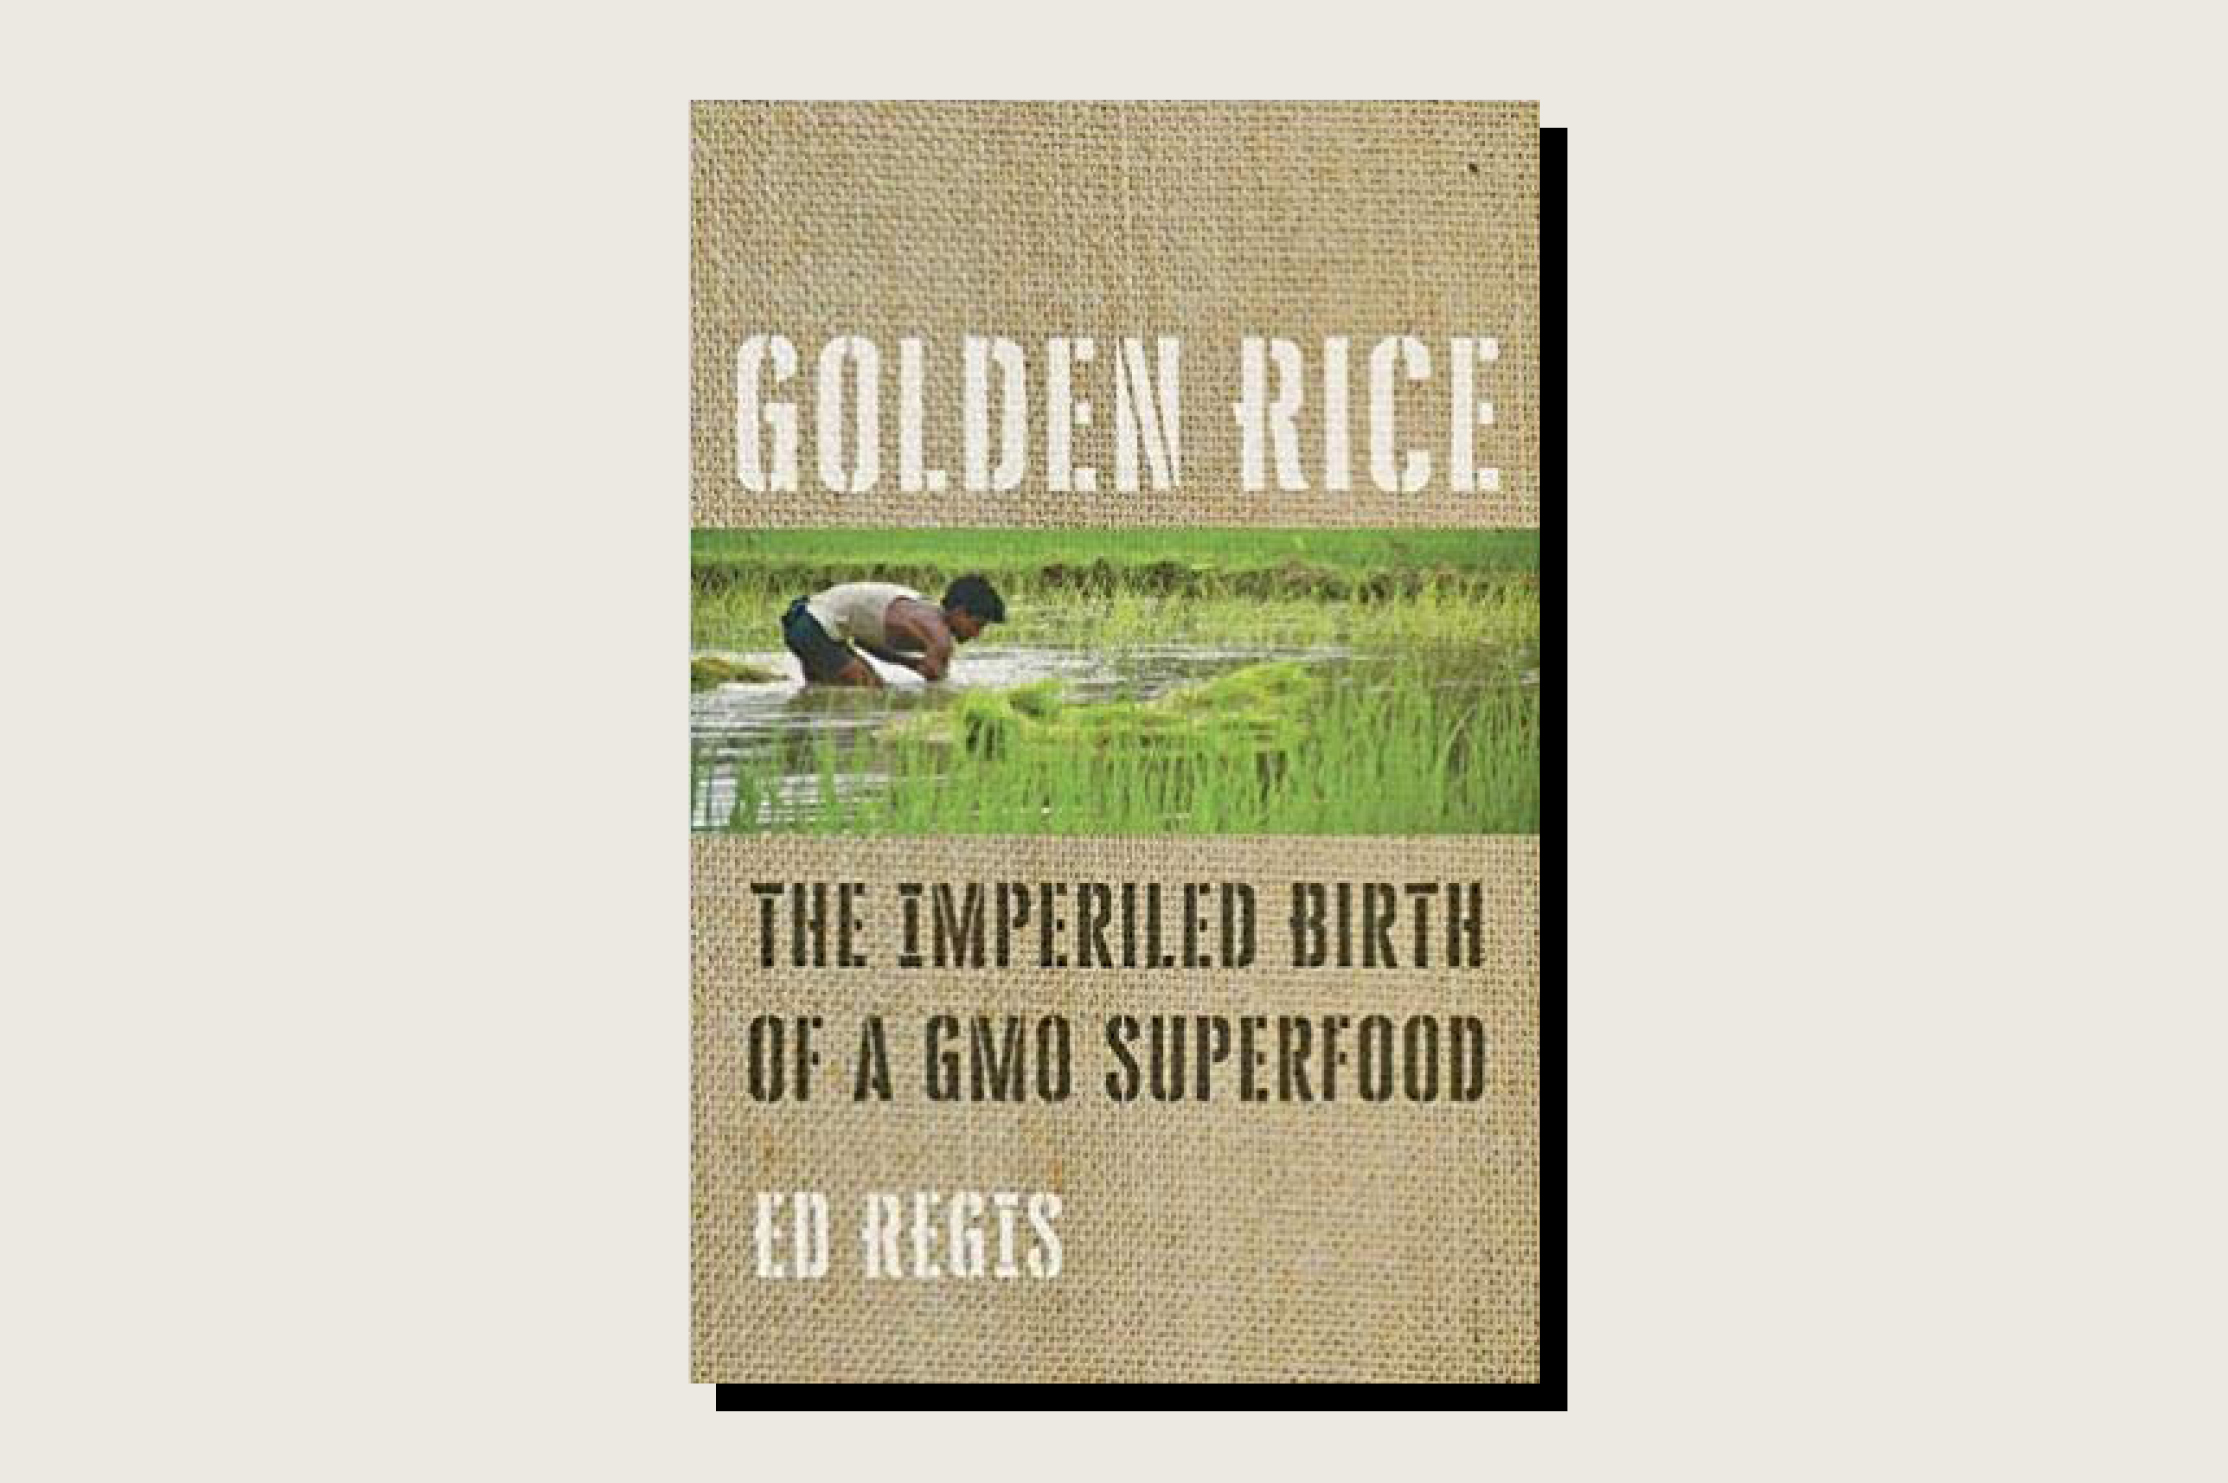 Golden Rice: The Imperiled Birth of a GMO Superfood, Ed Regis, Johns Hopkins University Press, 256 pp., .95, October 2019